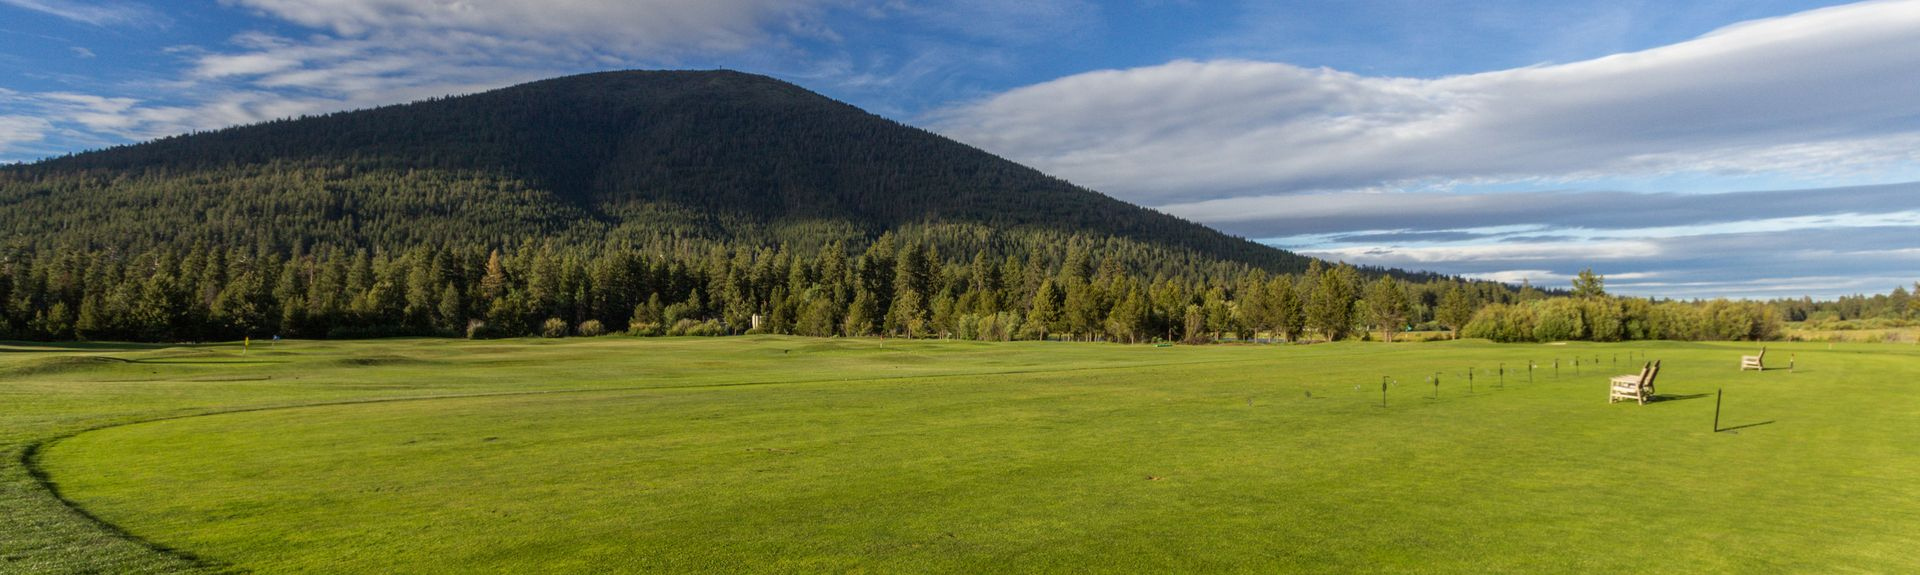 Aspen Lakes Golf Course, Sisters, Oregon, United States of America